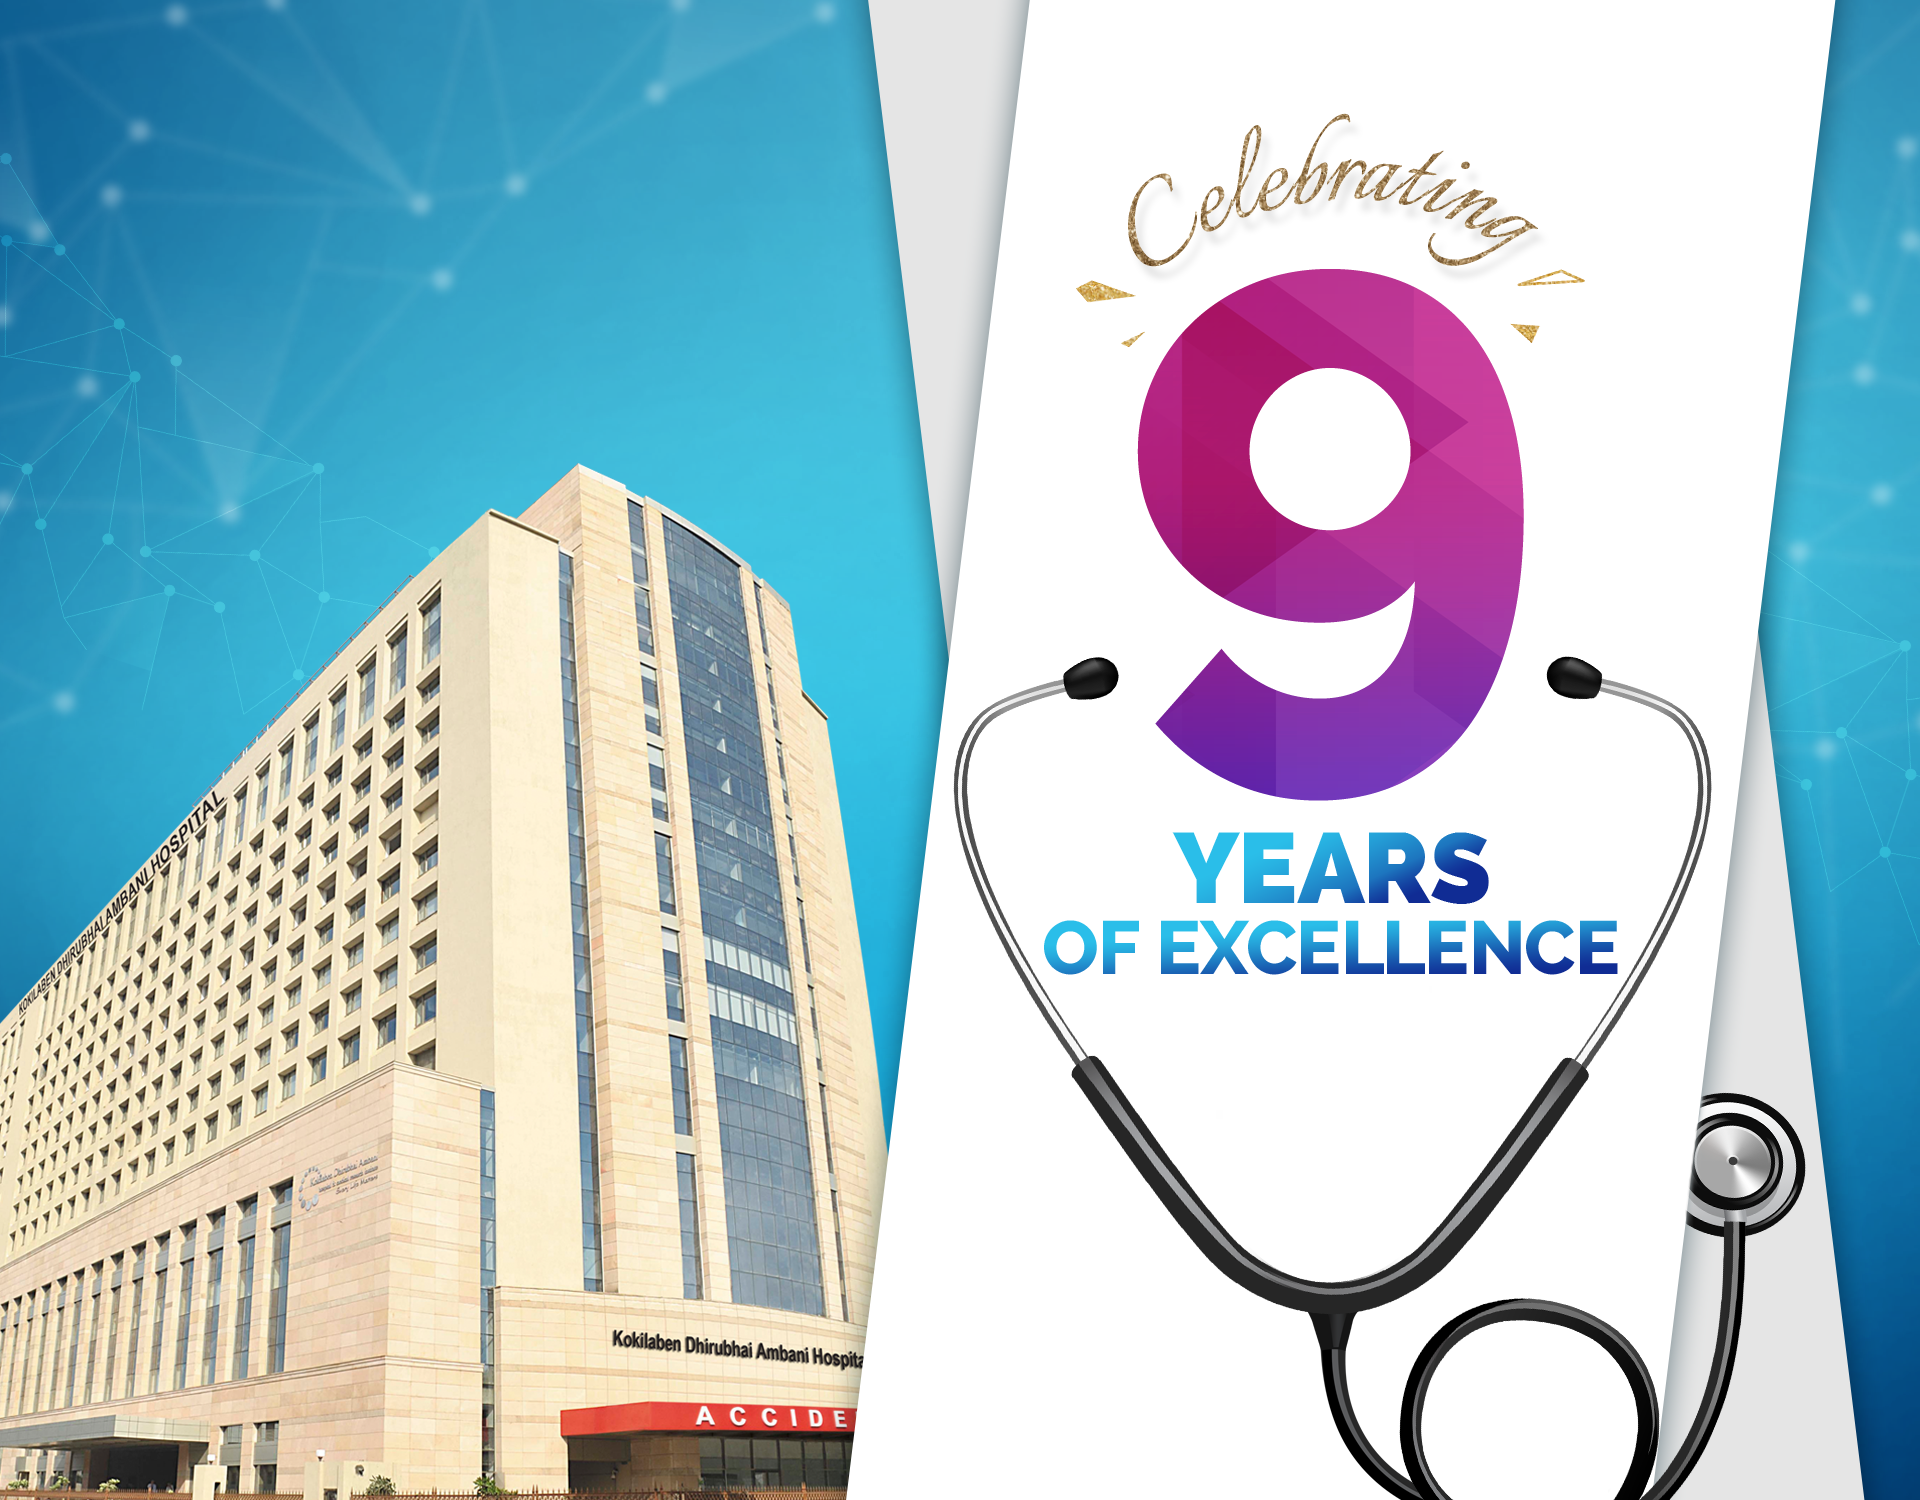 Kokilaben Dhirubhai Ambani Hospital - Celebrating 9 Years of Excellence